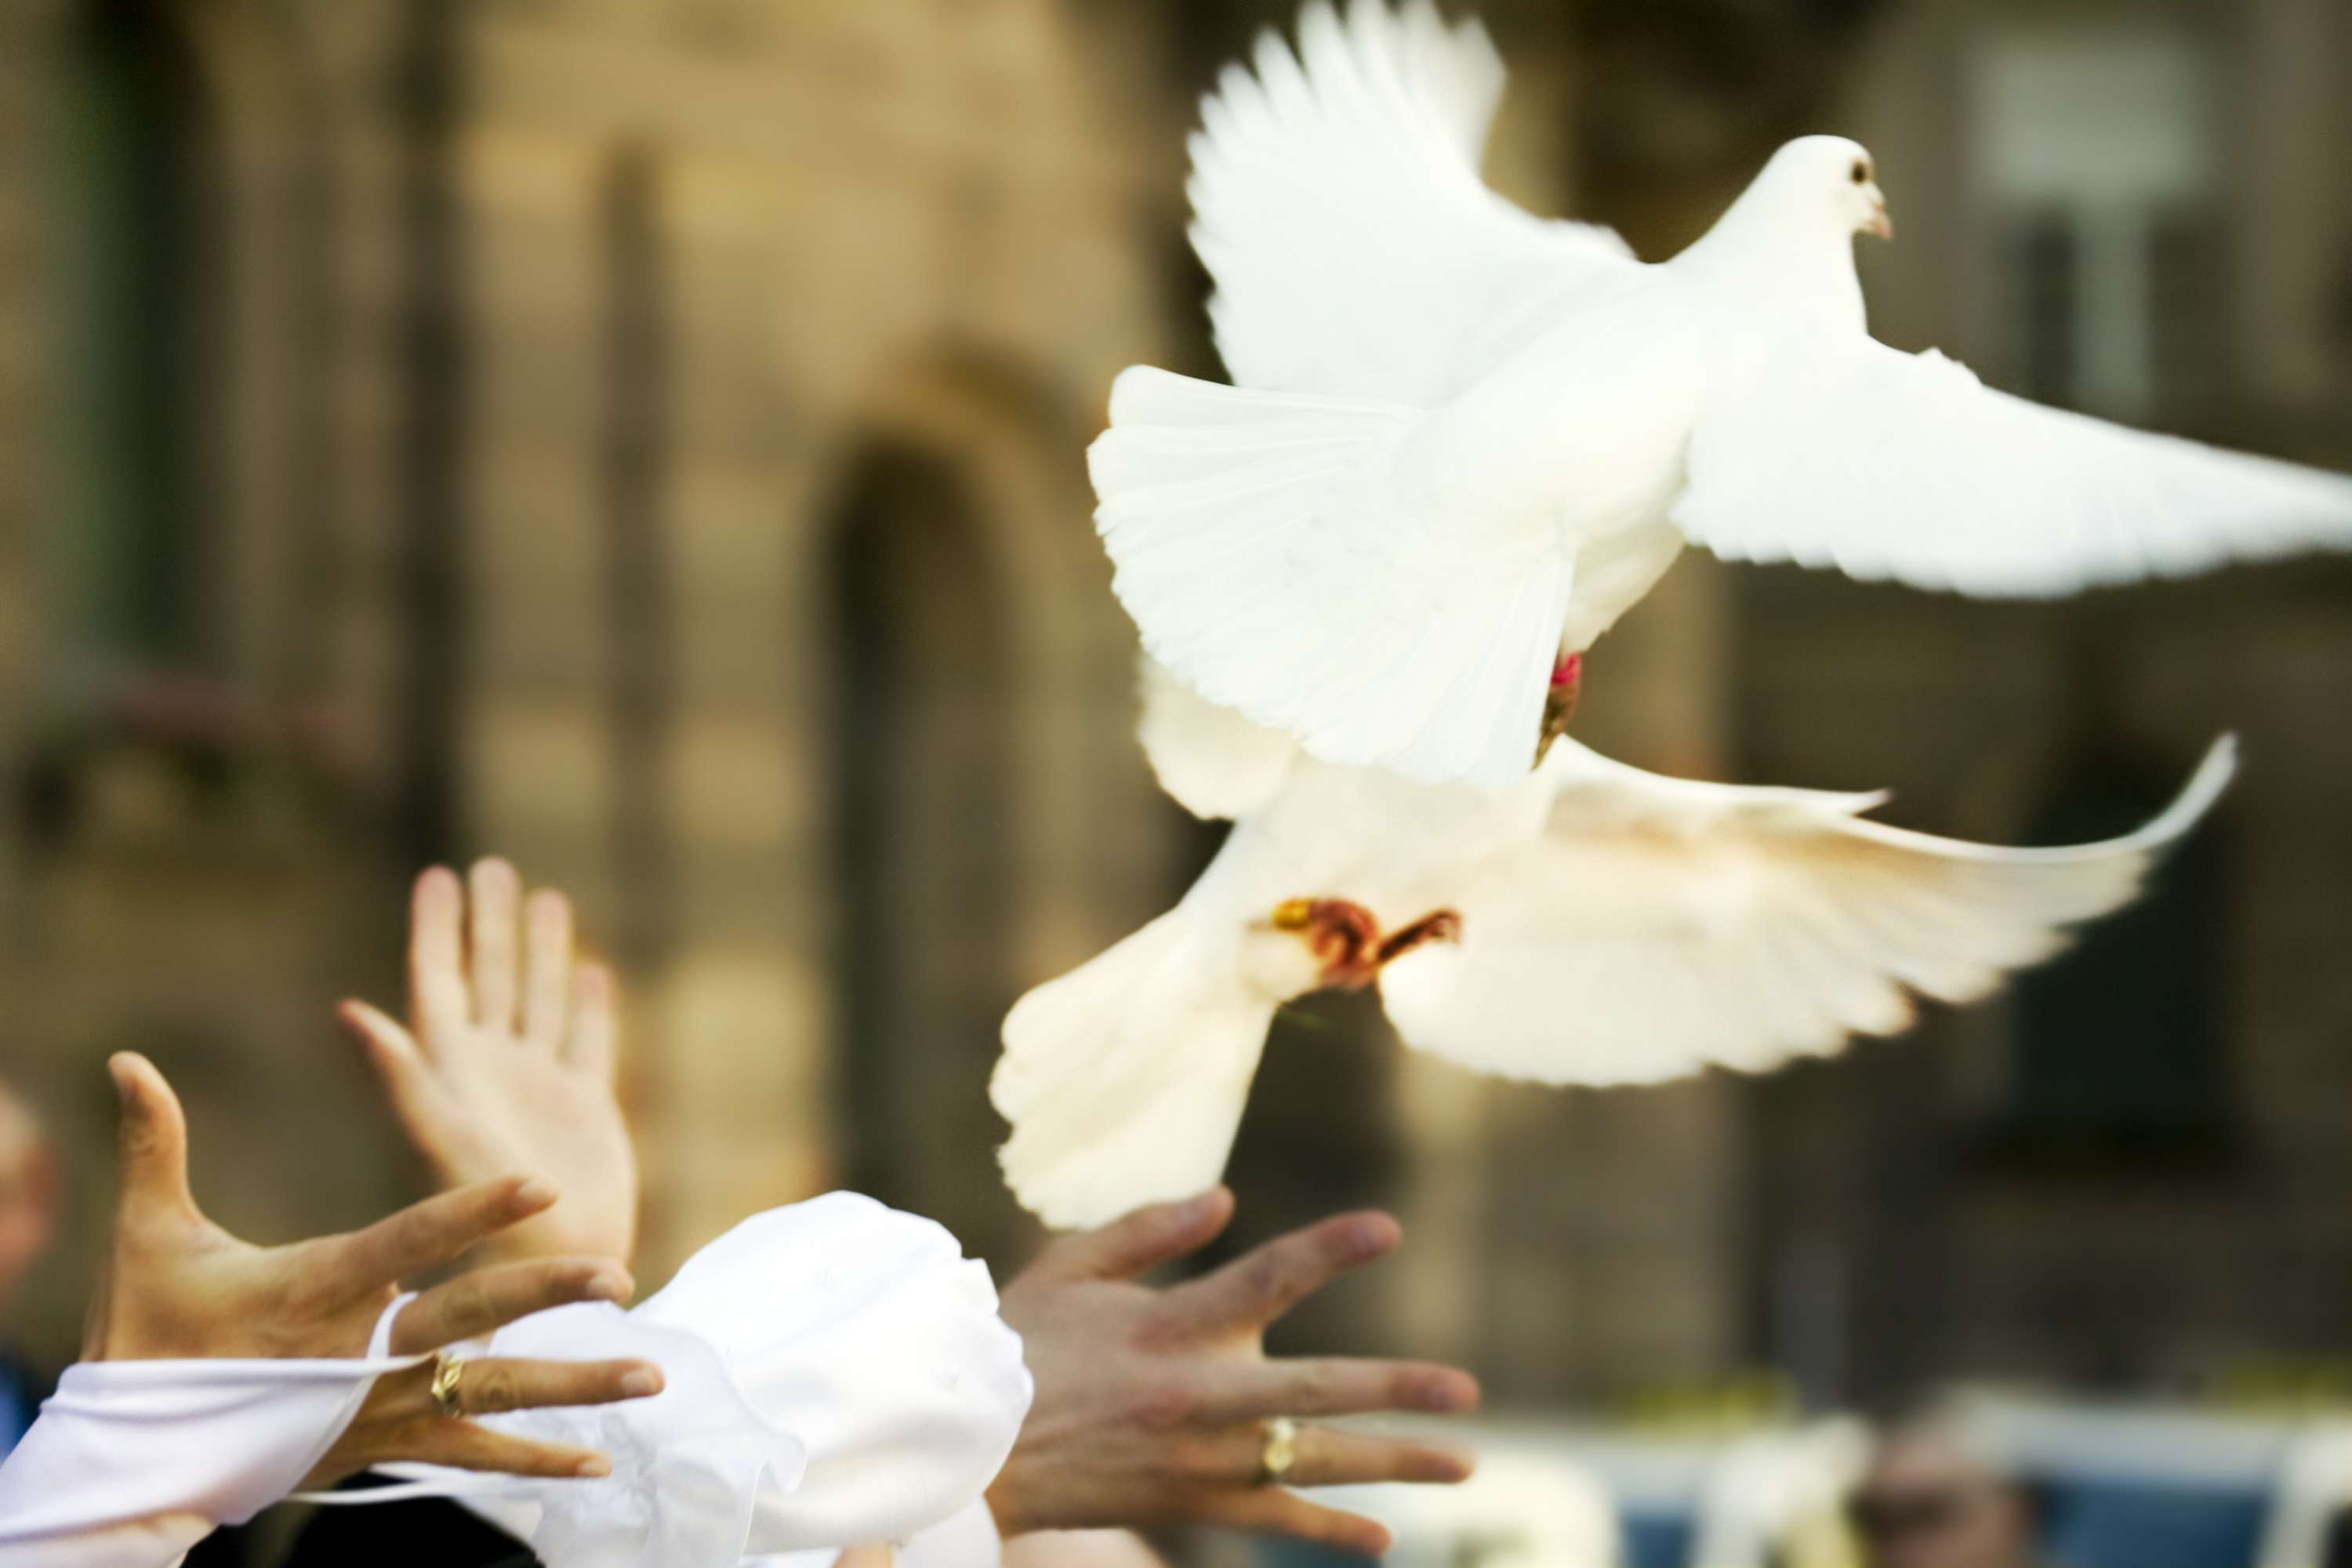 People releasing white doves into the air